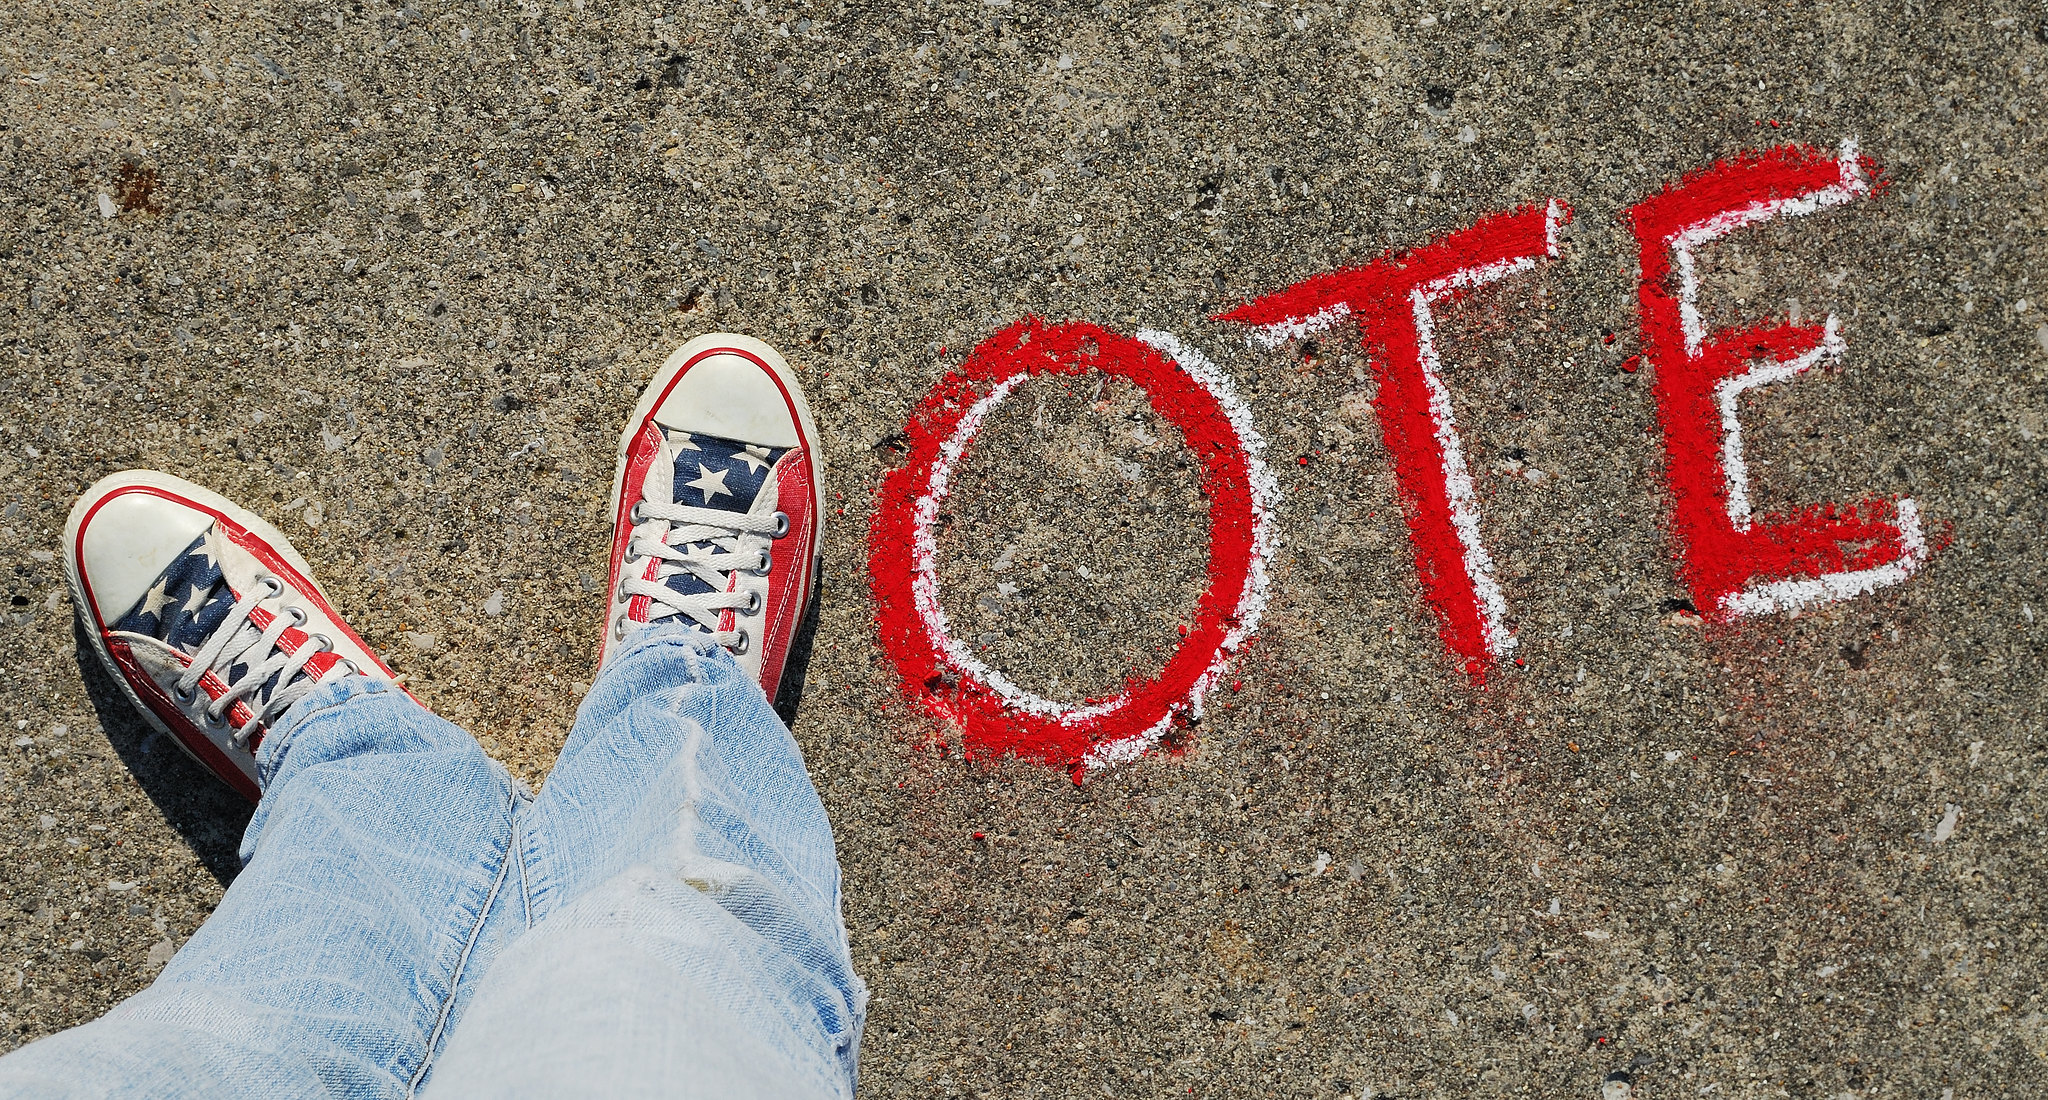 """Photograph of two feet in red, white, and blue sneakers compose the letter """"V,"""" followed by """"ote"""" in sidewalk chalk."""